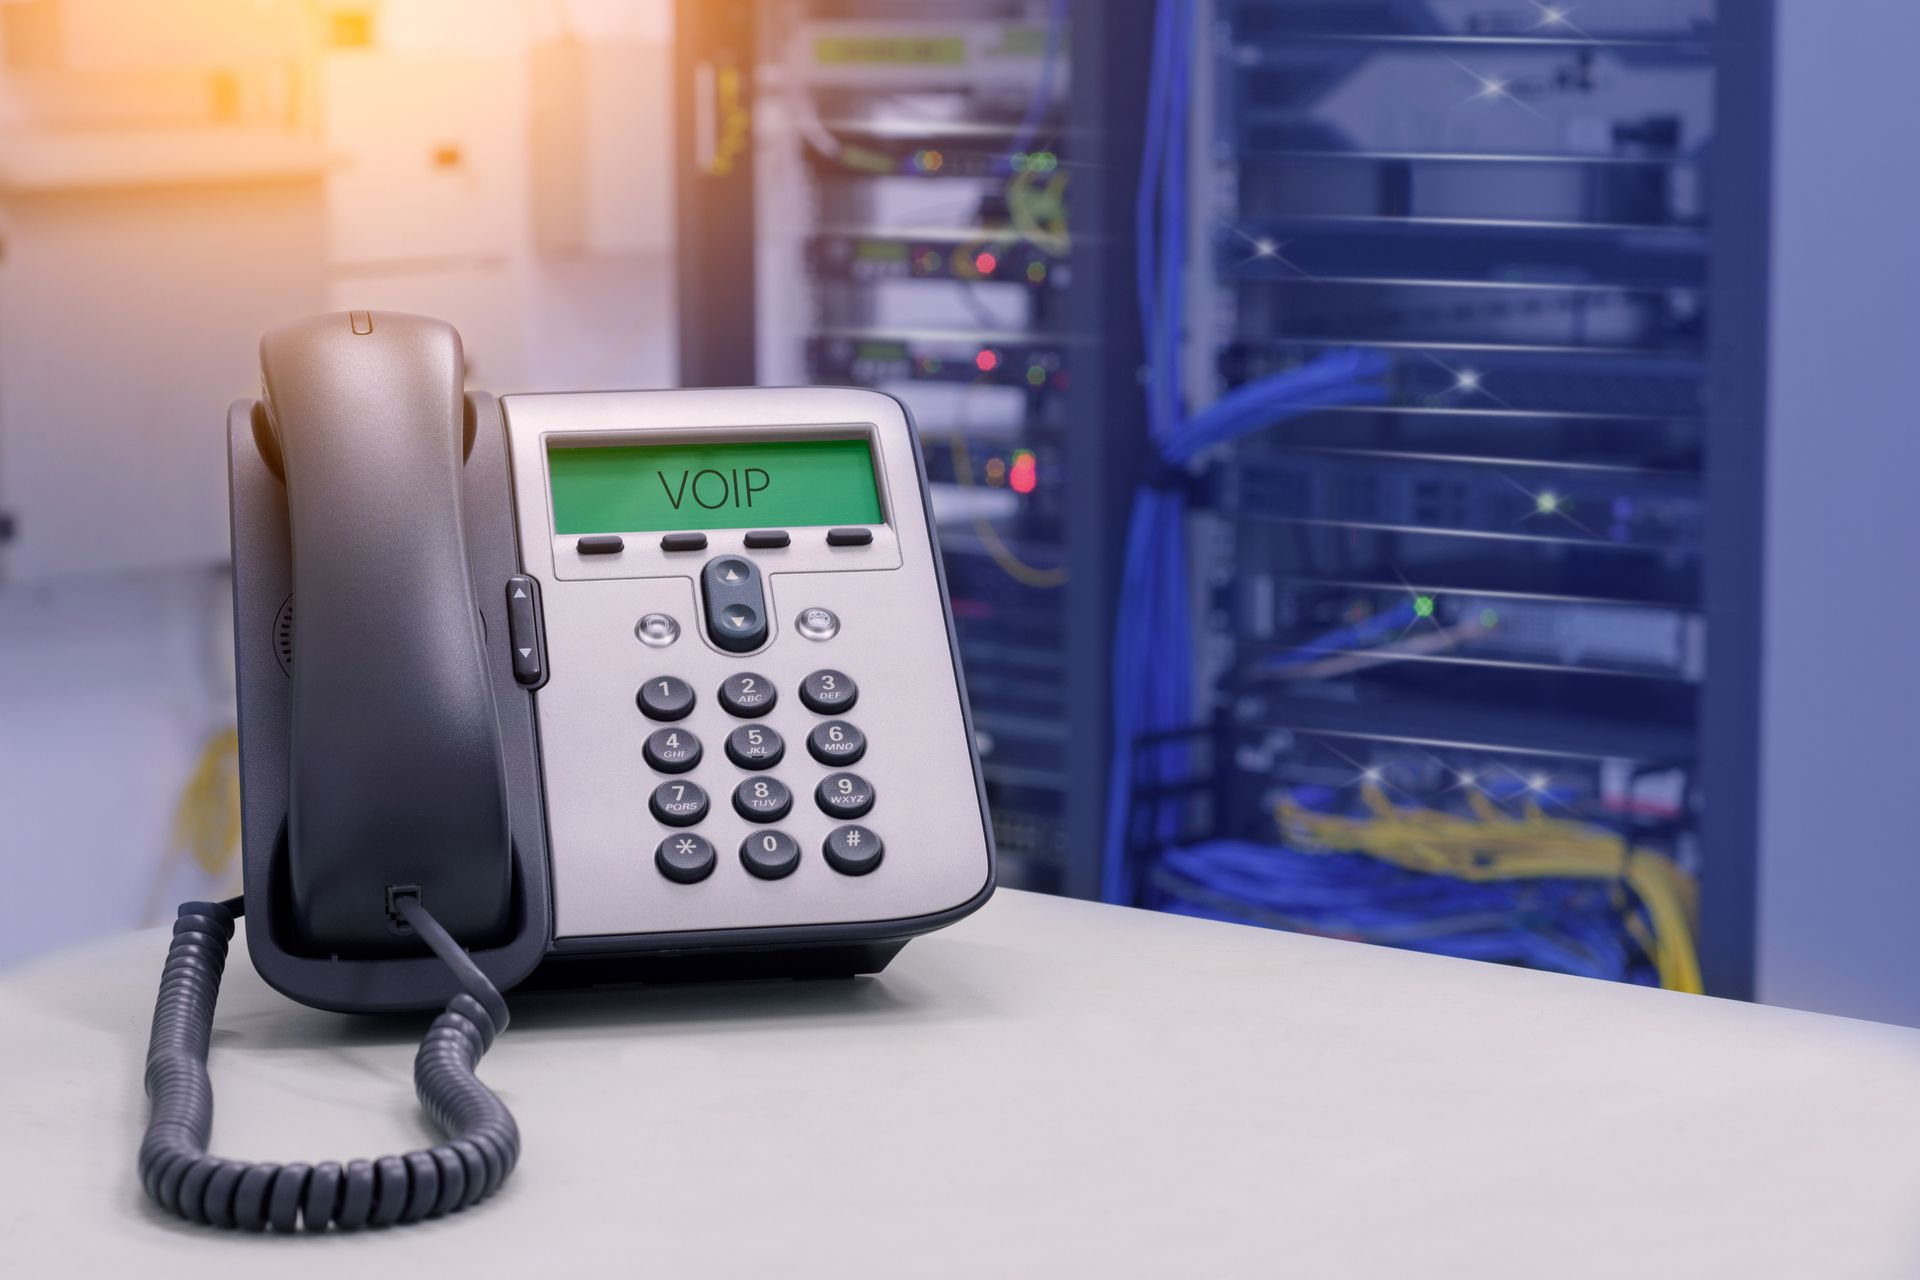 Enterprise Benefits of VoIP Phone, Voip solutions, Phone